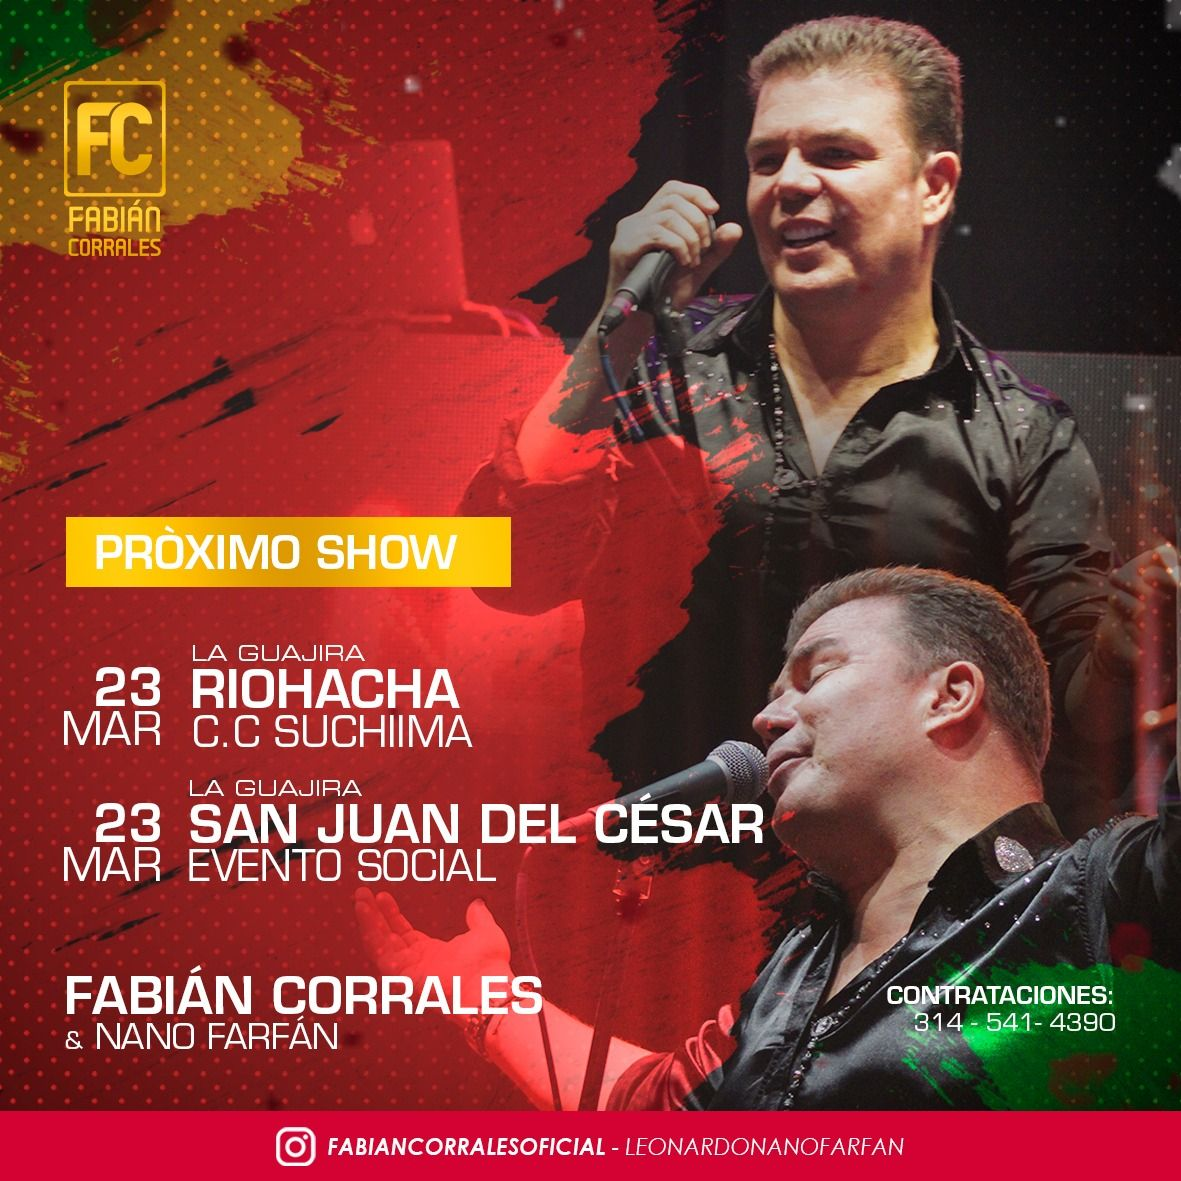 Fabian Corrales Memorables